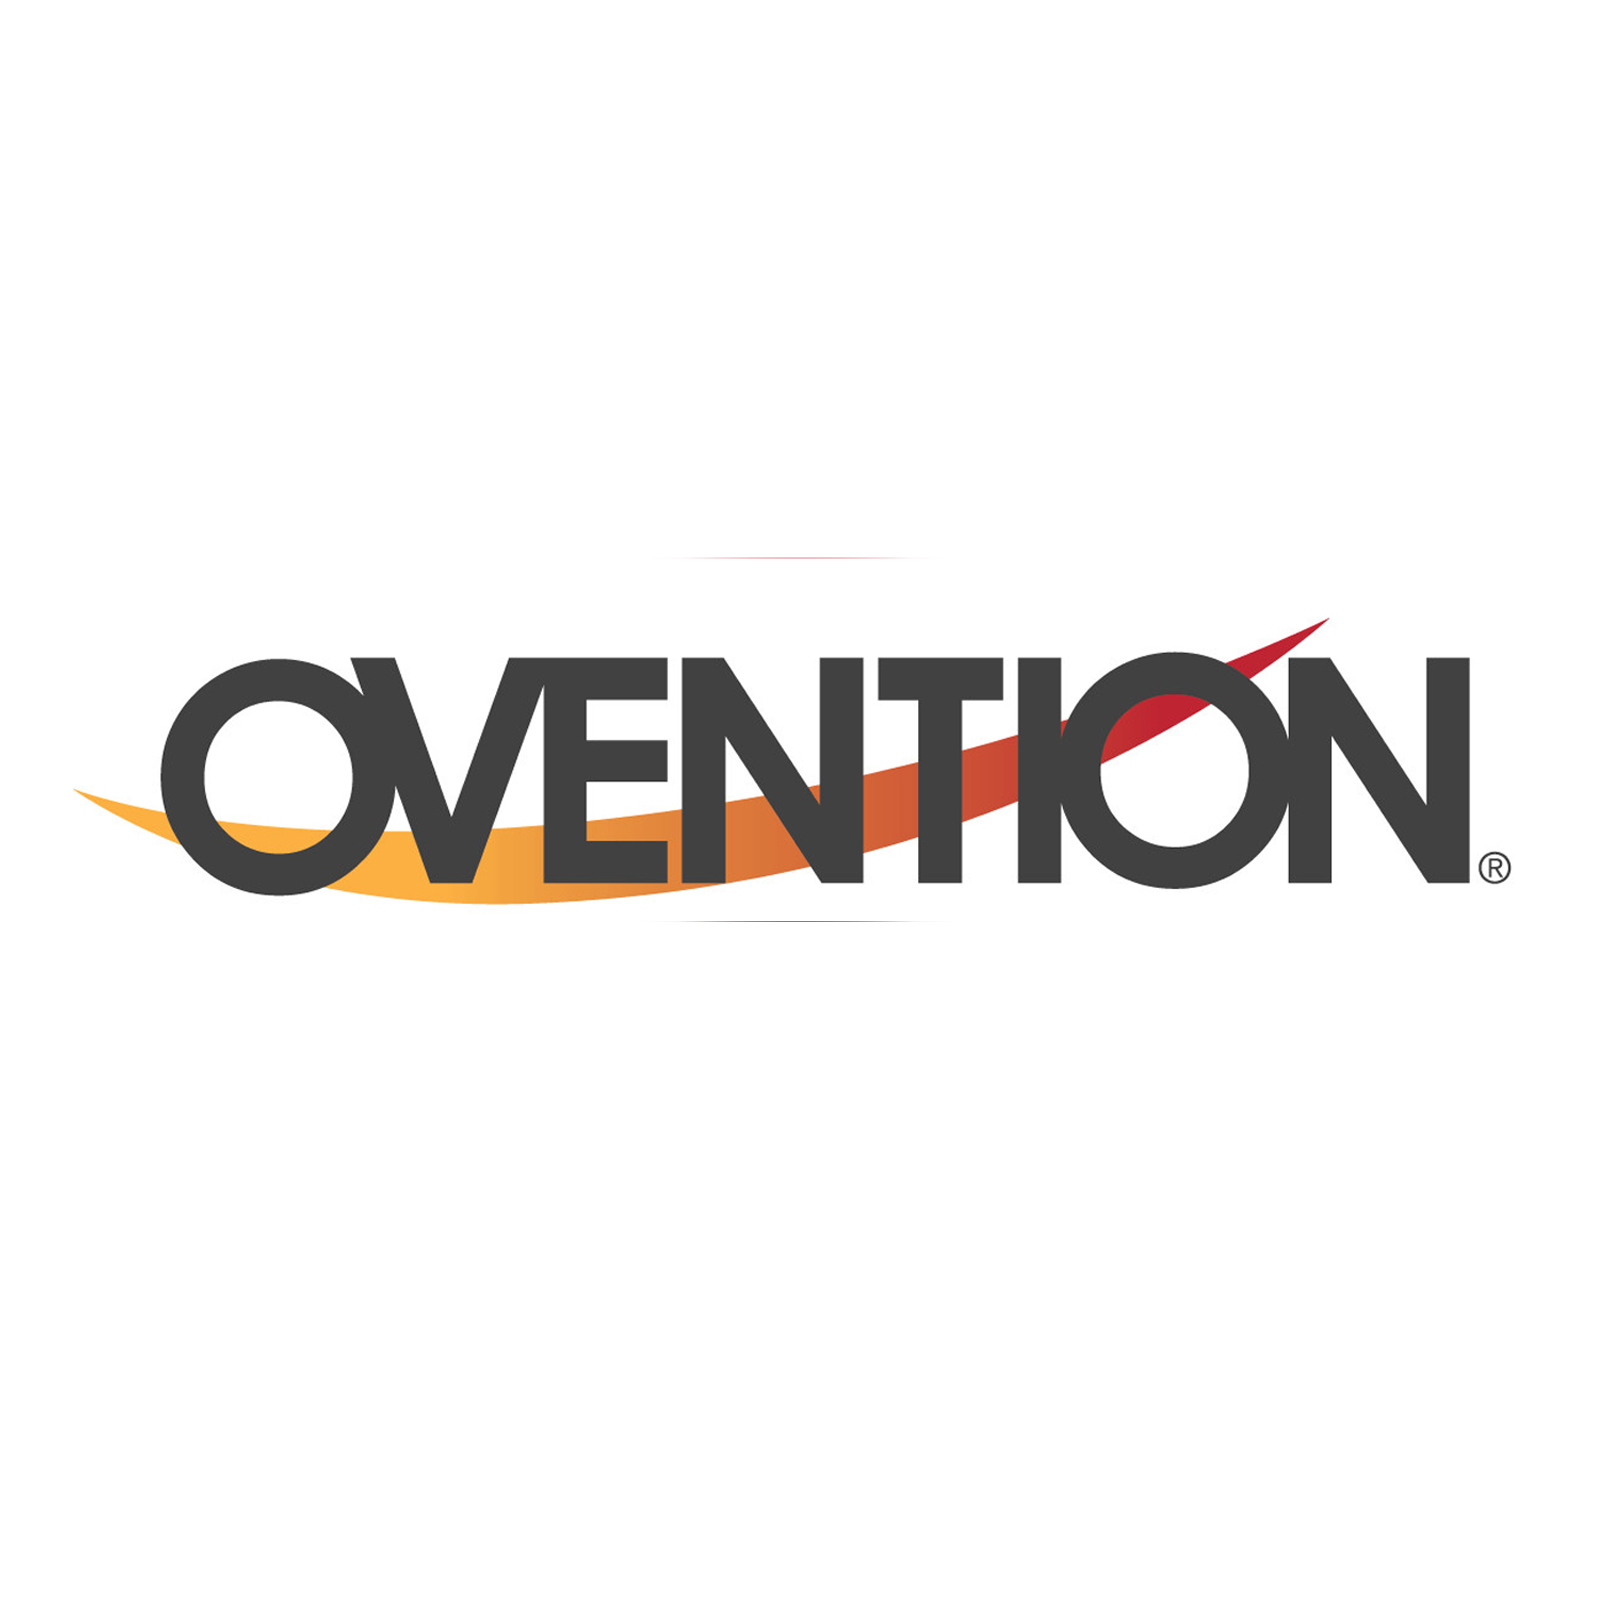 Ovention